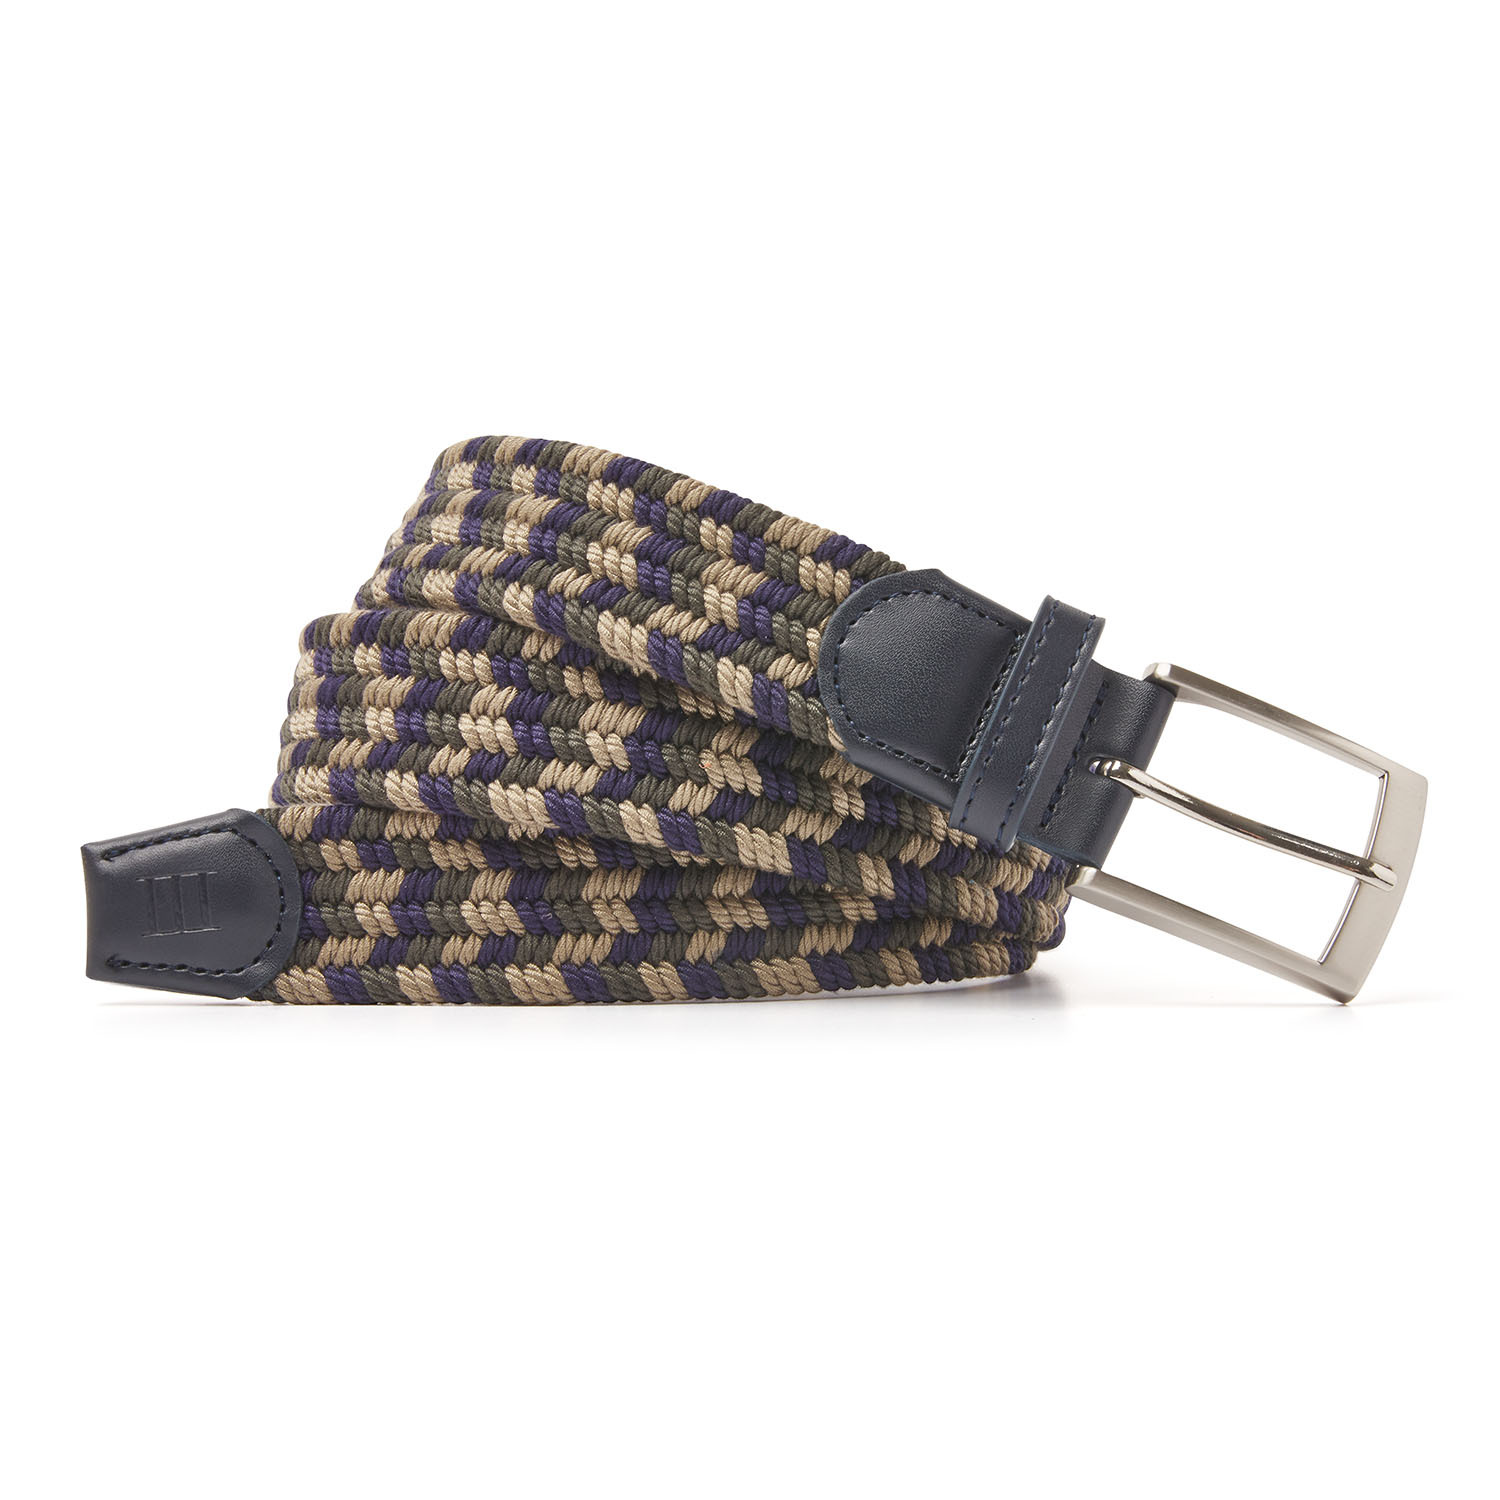 Matz | Braided belt multi colour